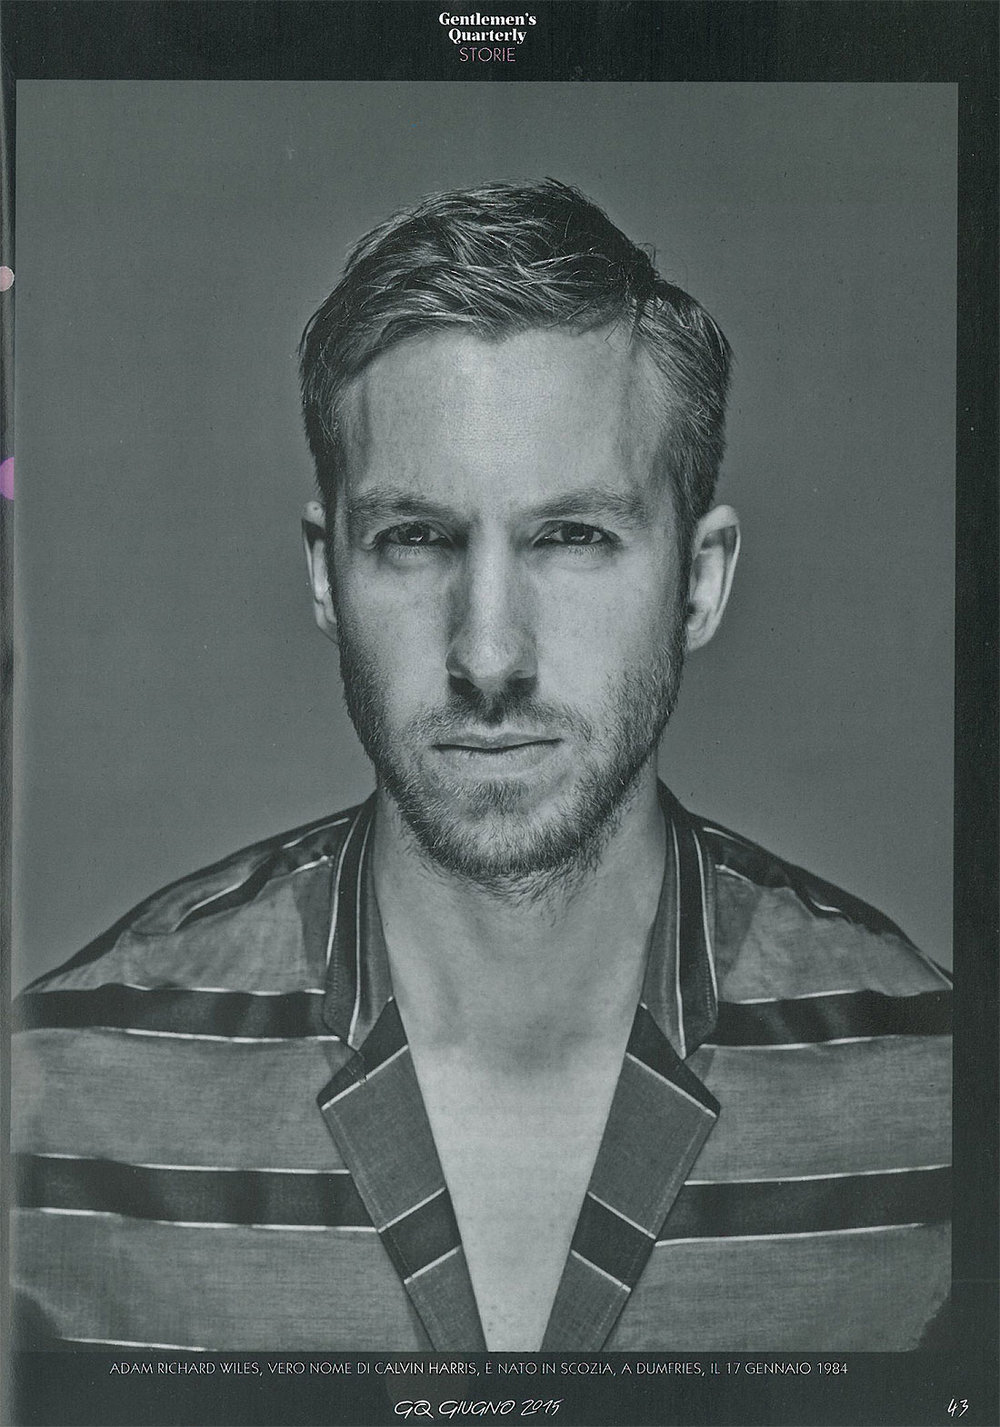 GQ: Calvin Harris interview